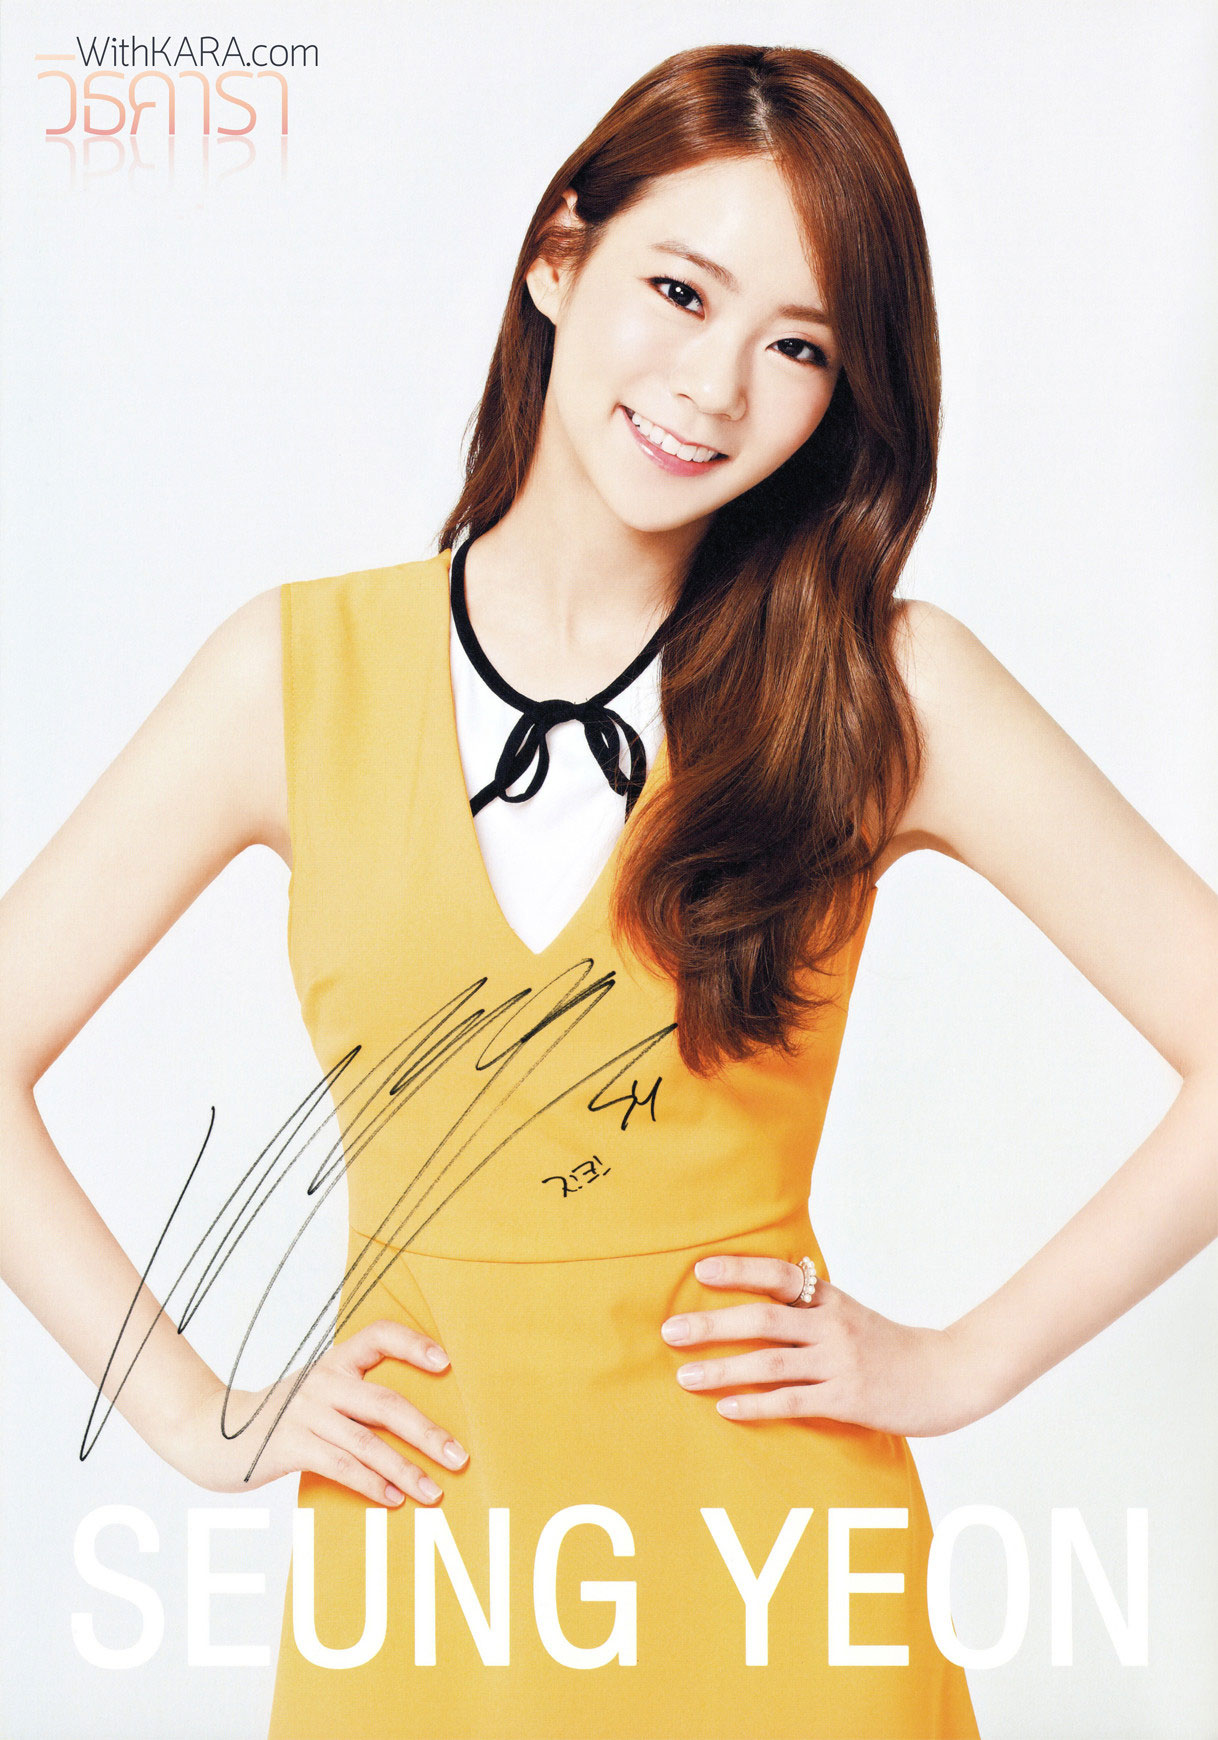 KARA Seungyeon 3rd Japan Tour Photobook